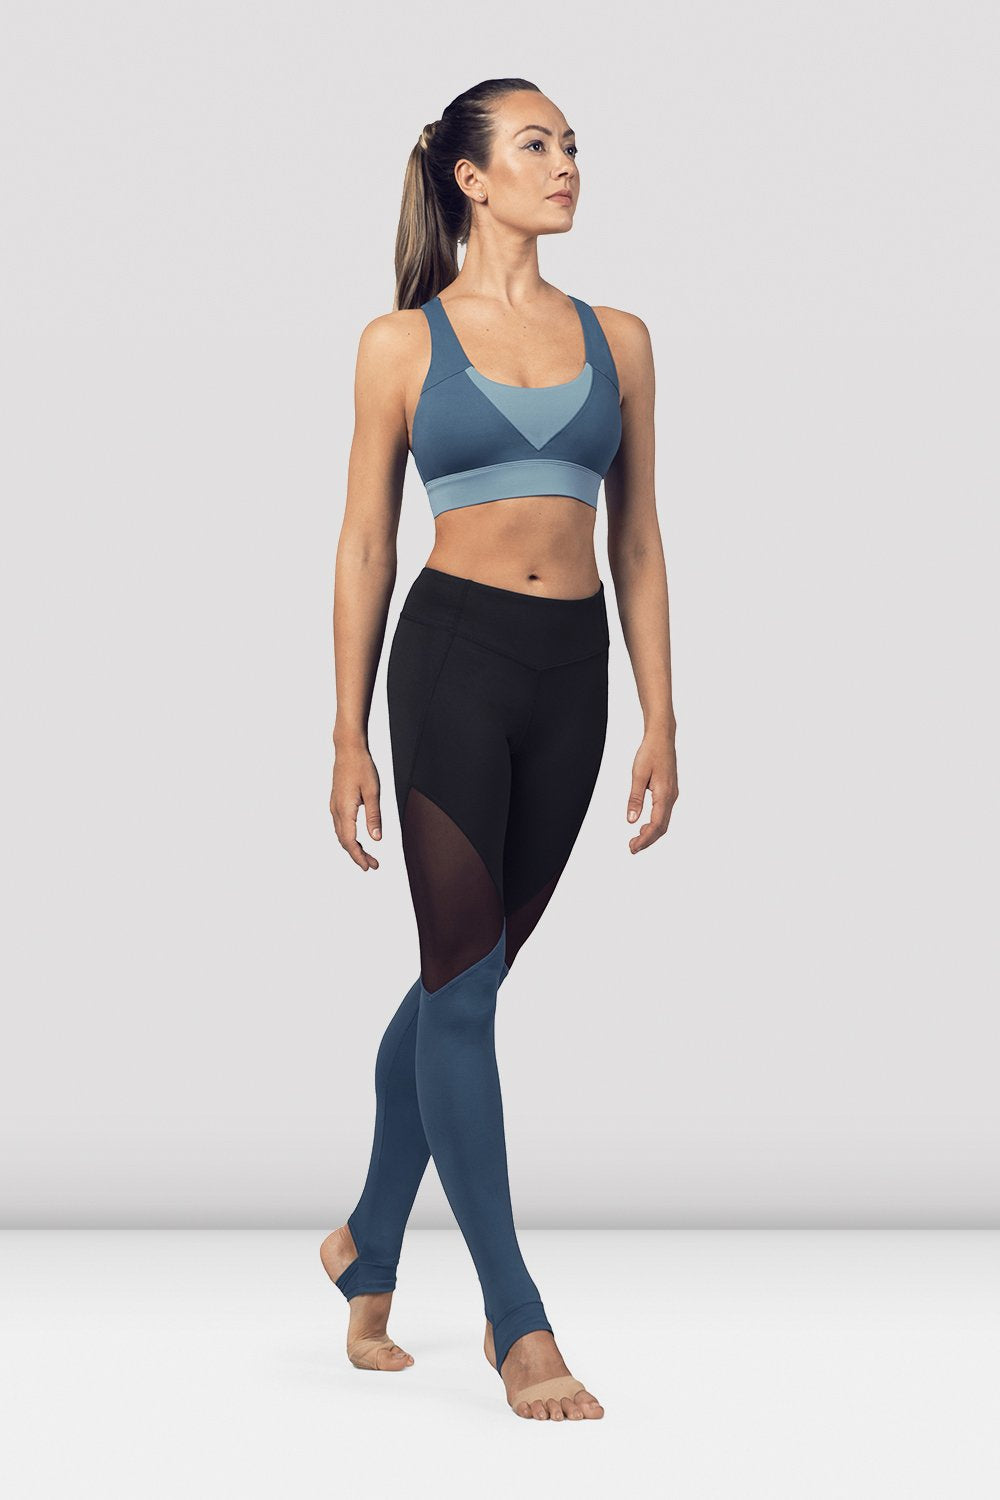 Seaport Bloch Ladies Cross Back Tank Crop Top  on female model in parallel fourth position on releve facing corner